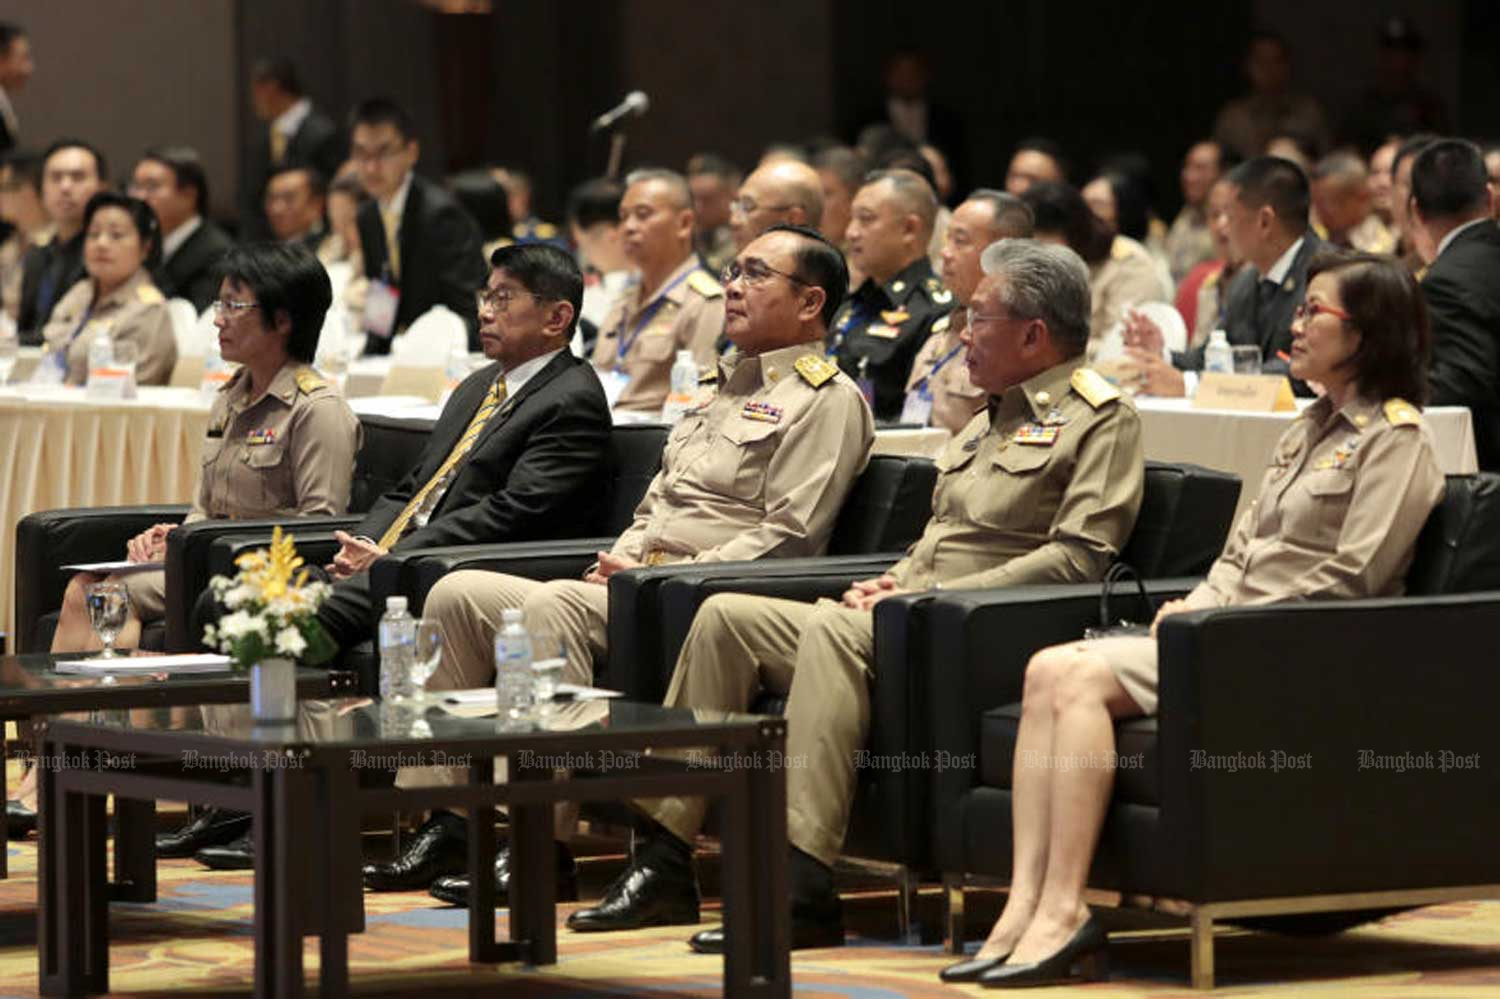 Prime Minister Prayut Chan-o-cha, centre, presides over a seminar on the implementation of national strategies in Nonthaburi province on Monday. (Photo by Chanat Katanyu)